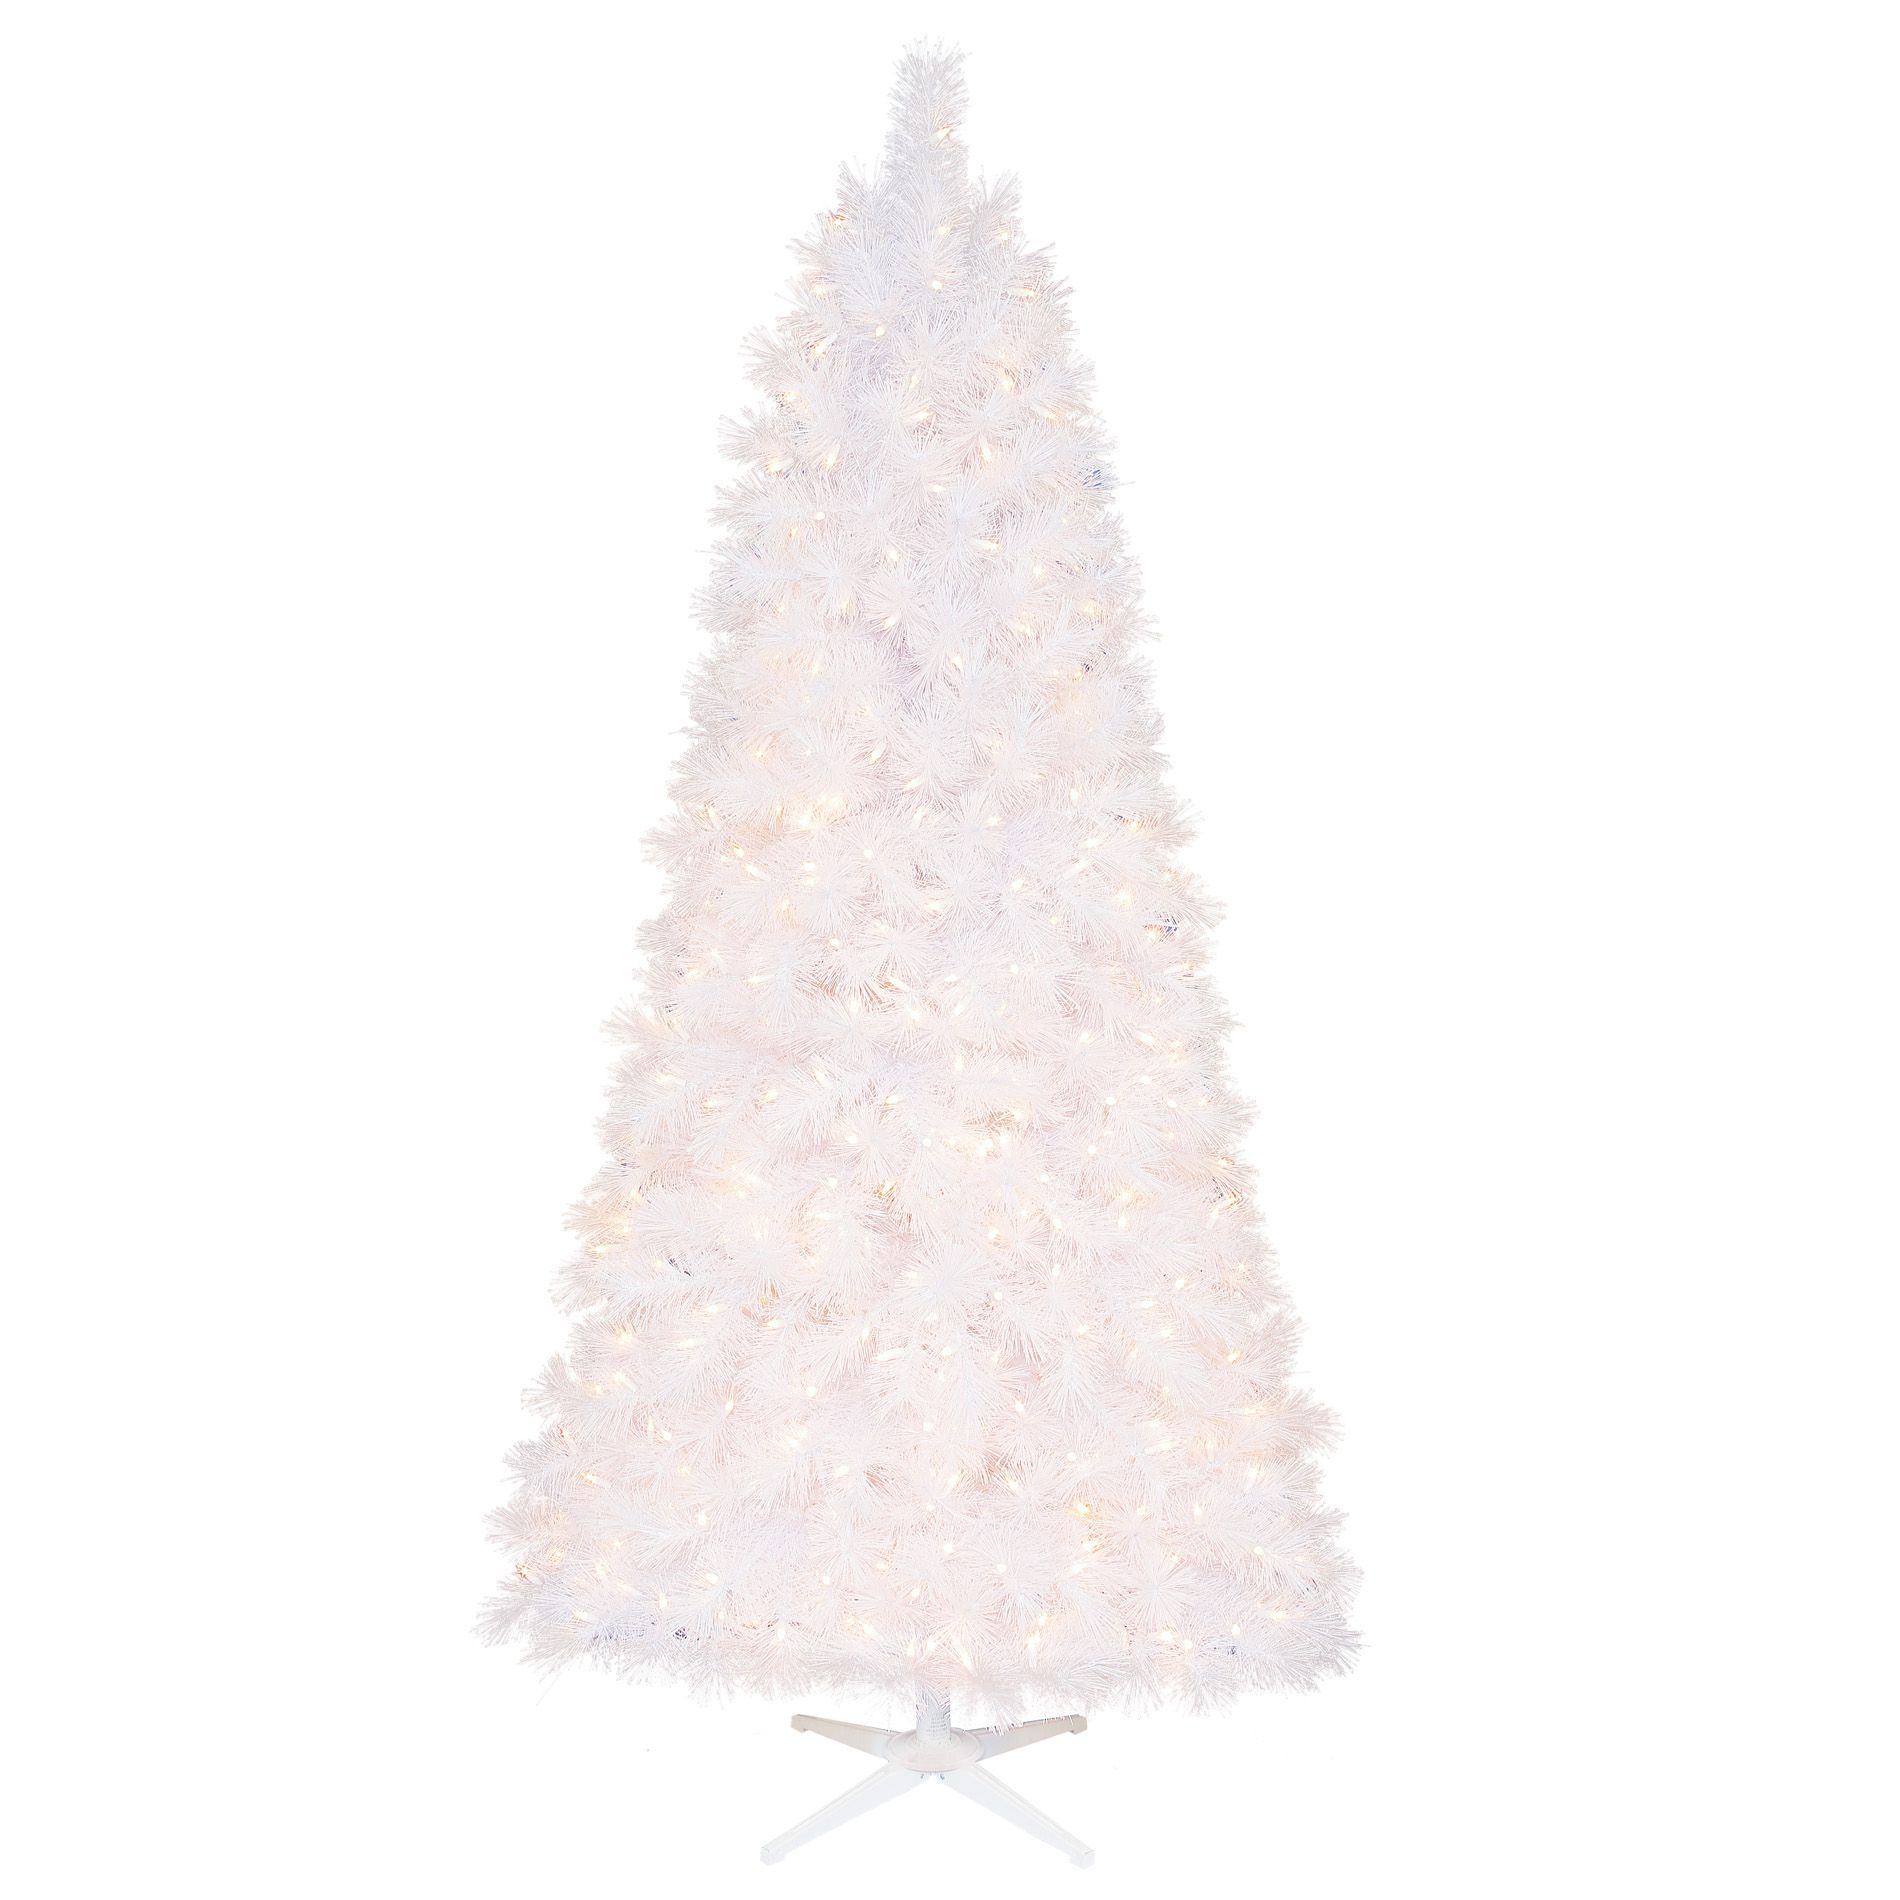 Ty Pennington Style 7 Ft Clear Pre-Lit White Artificial Christmas Tree